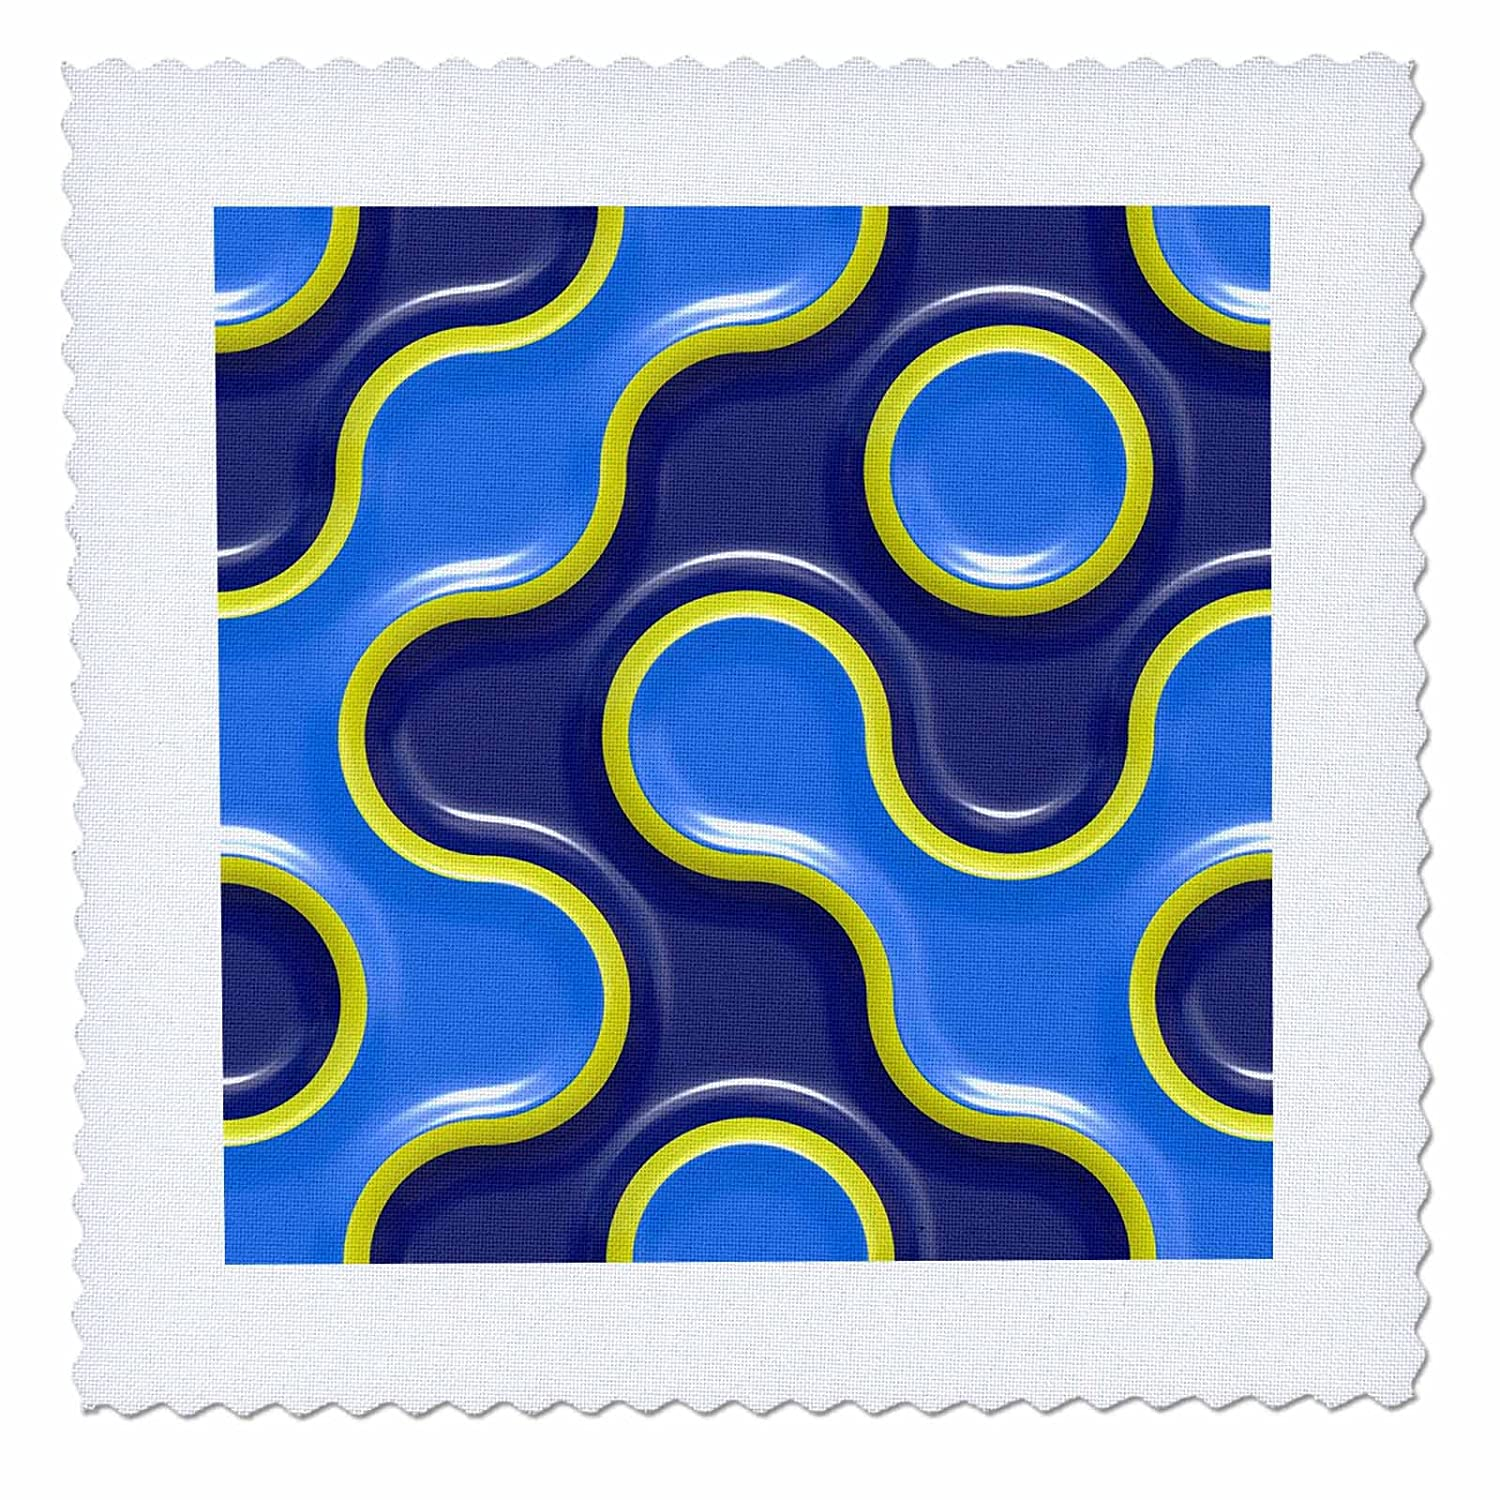 3dRose Sven Herkenrath Art - Interestingly Shaped Light and Dark Blue Abstract Pattern - 20x20 inch quilt square (qs_280425_8)